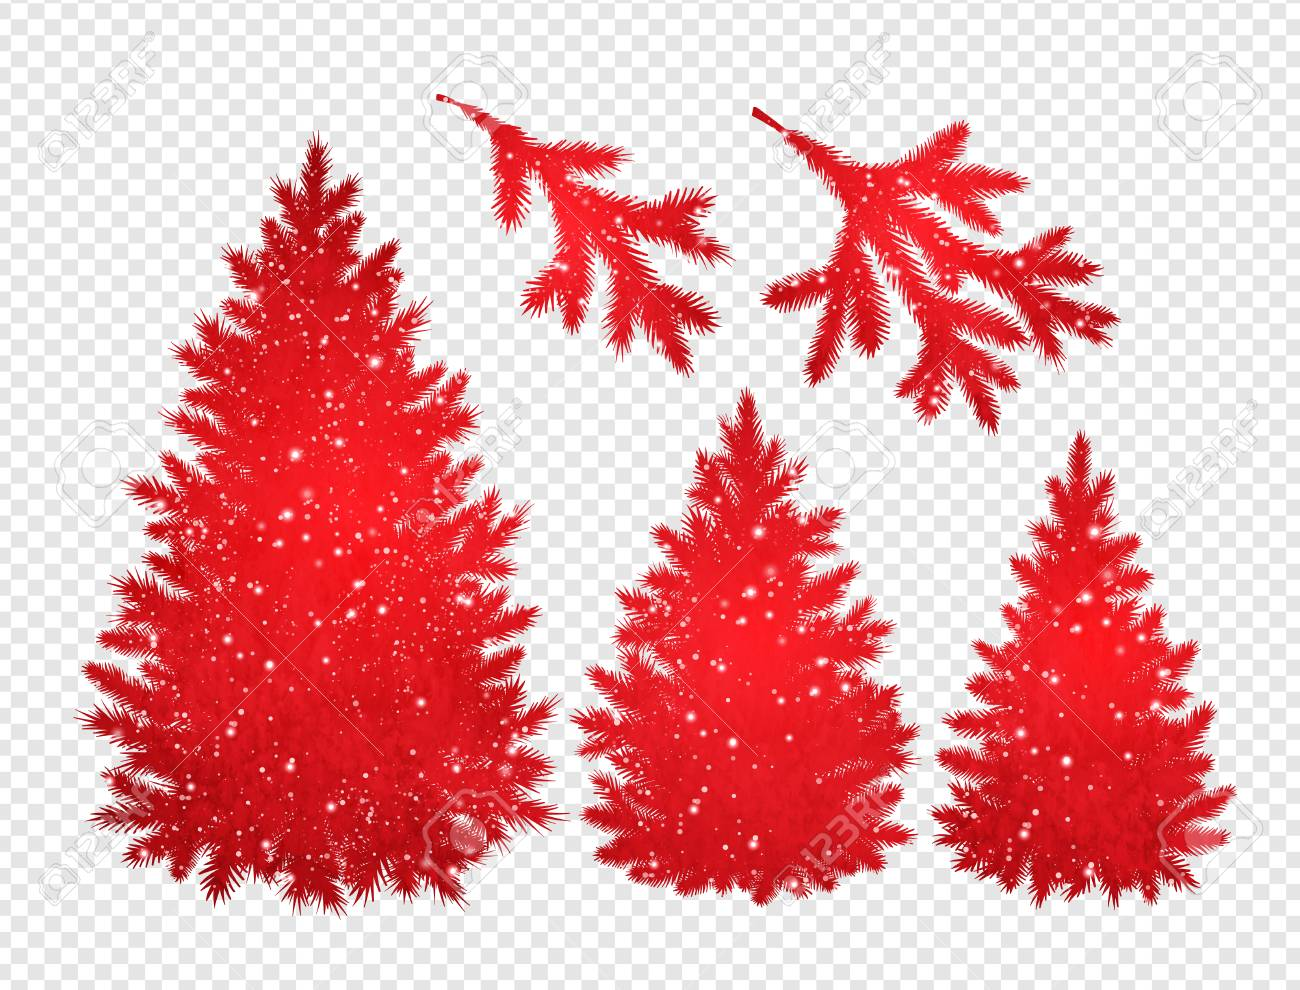 Collection Of Red Christmas Trees And Branches In Transparent Royalty Free Cliparts Vectors And Stock Illustration Image 90953997